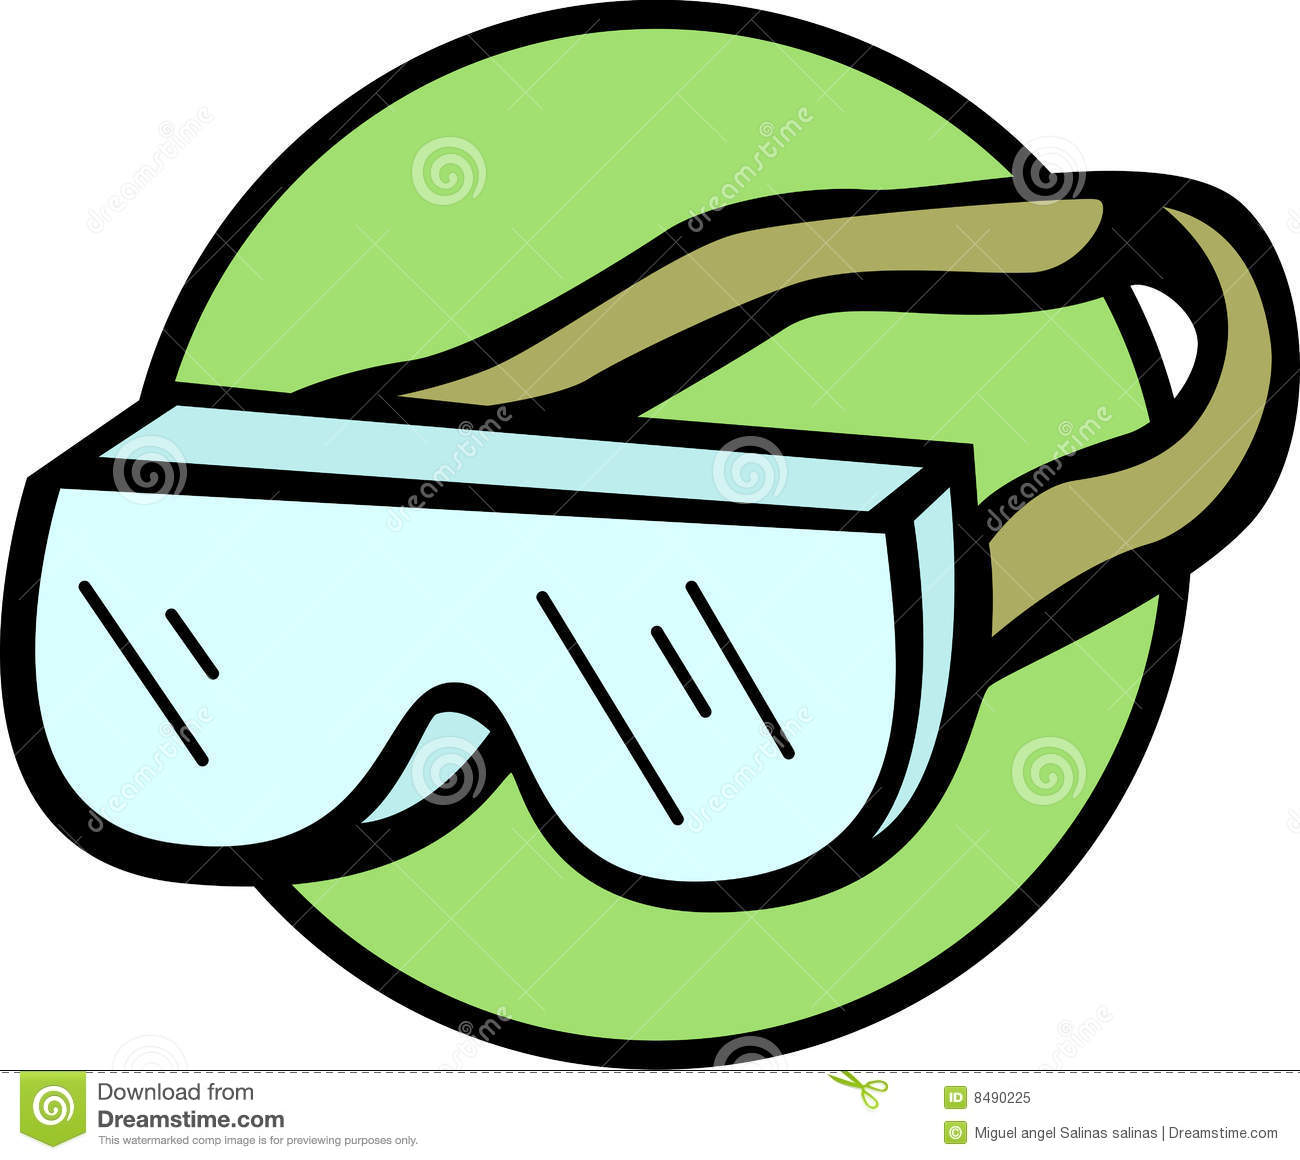 Woodburn (OR) United States  city photos gallery : Safety Goggles With Strap Vector Illustration Royalty Free Stock Photo ...